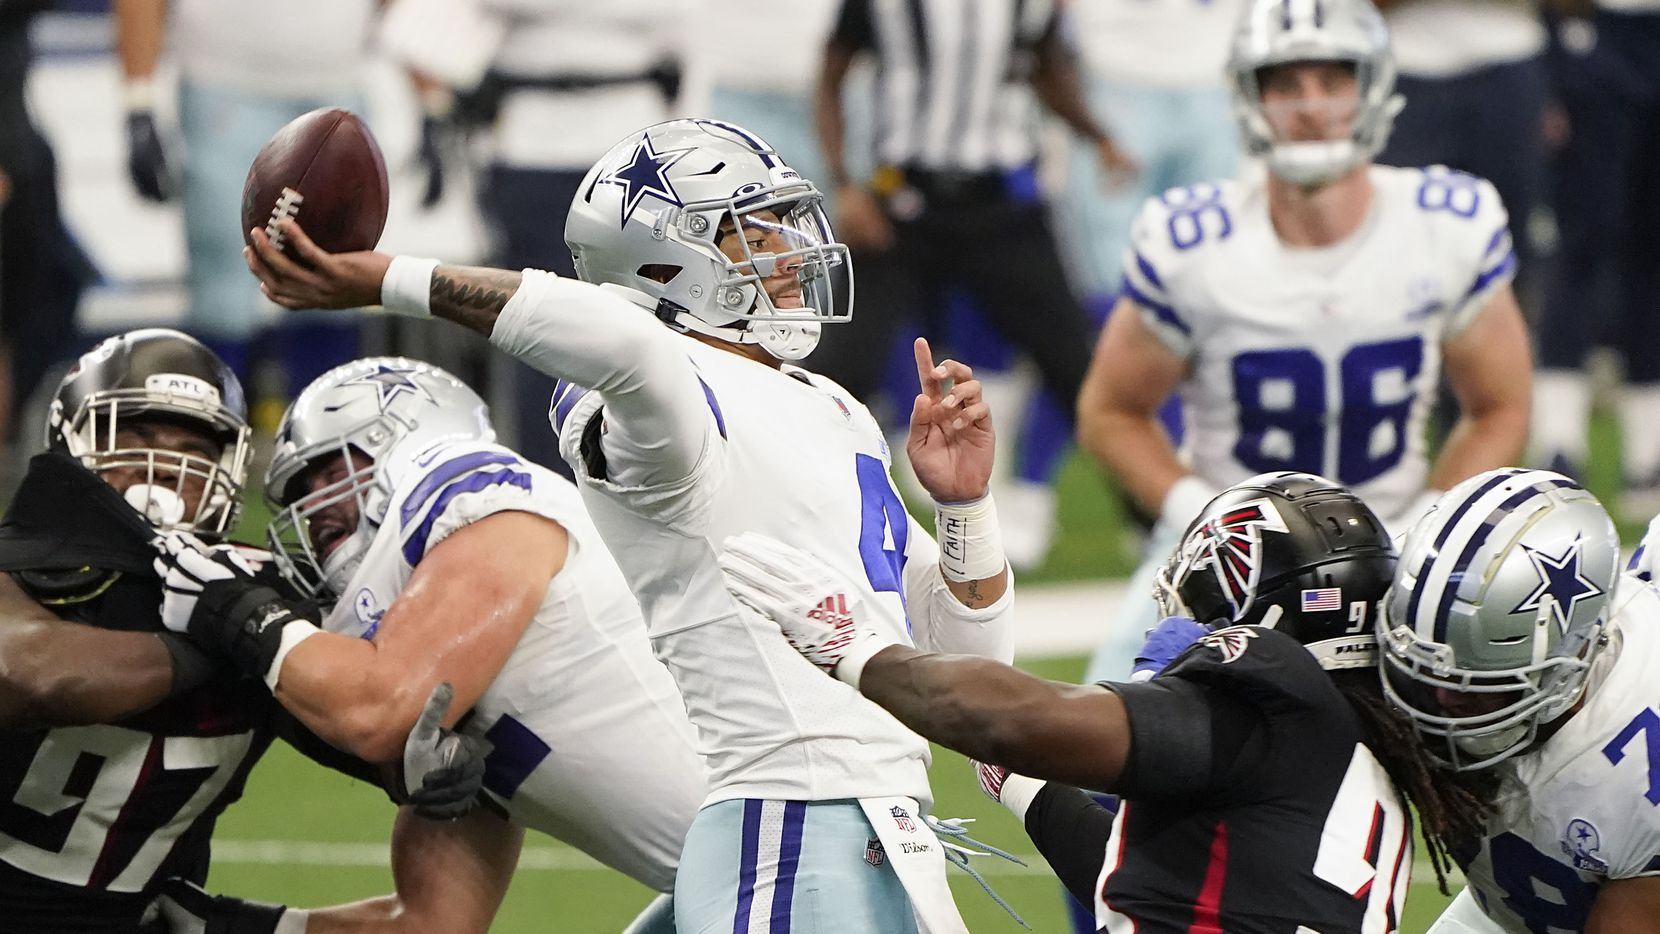 FILE - Cowboys quarterback Dak Prescott (4) throws a pass under pressure in the first quarter of a game against the Falcons on Sunday, Sept. 20, 2020, at AT&T Stadium in Arlington.